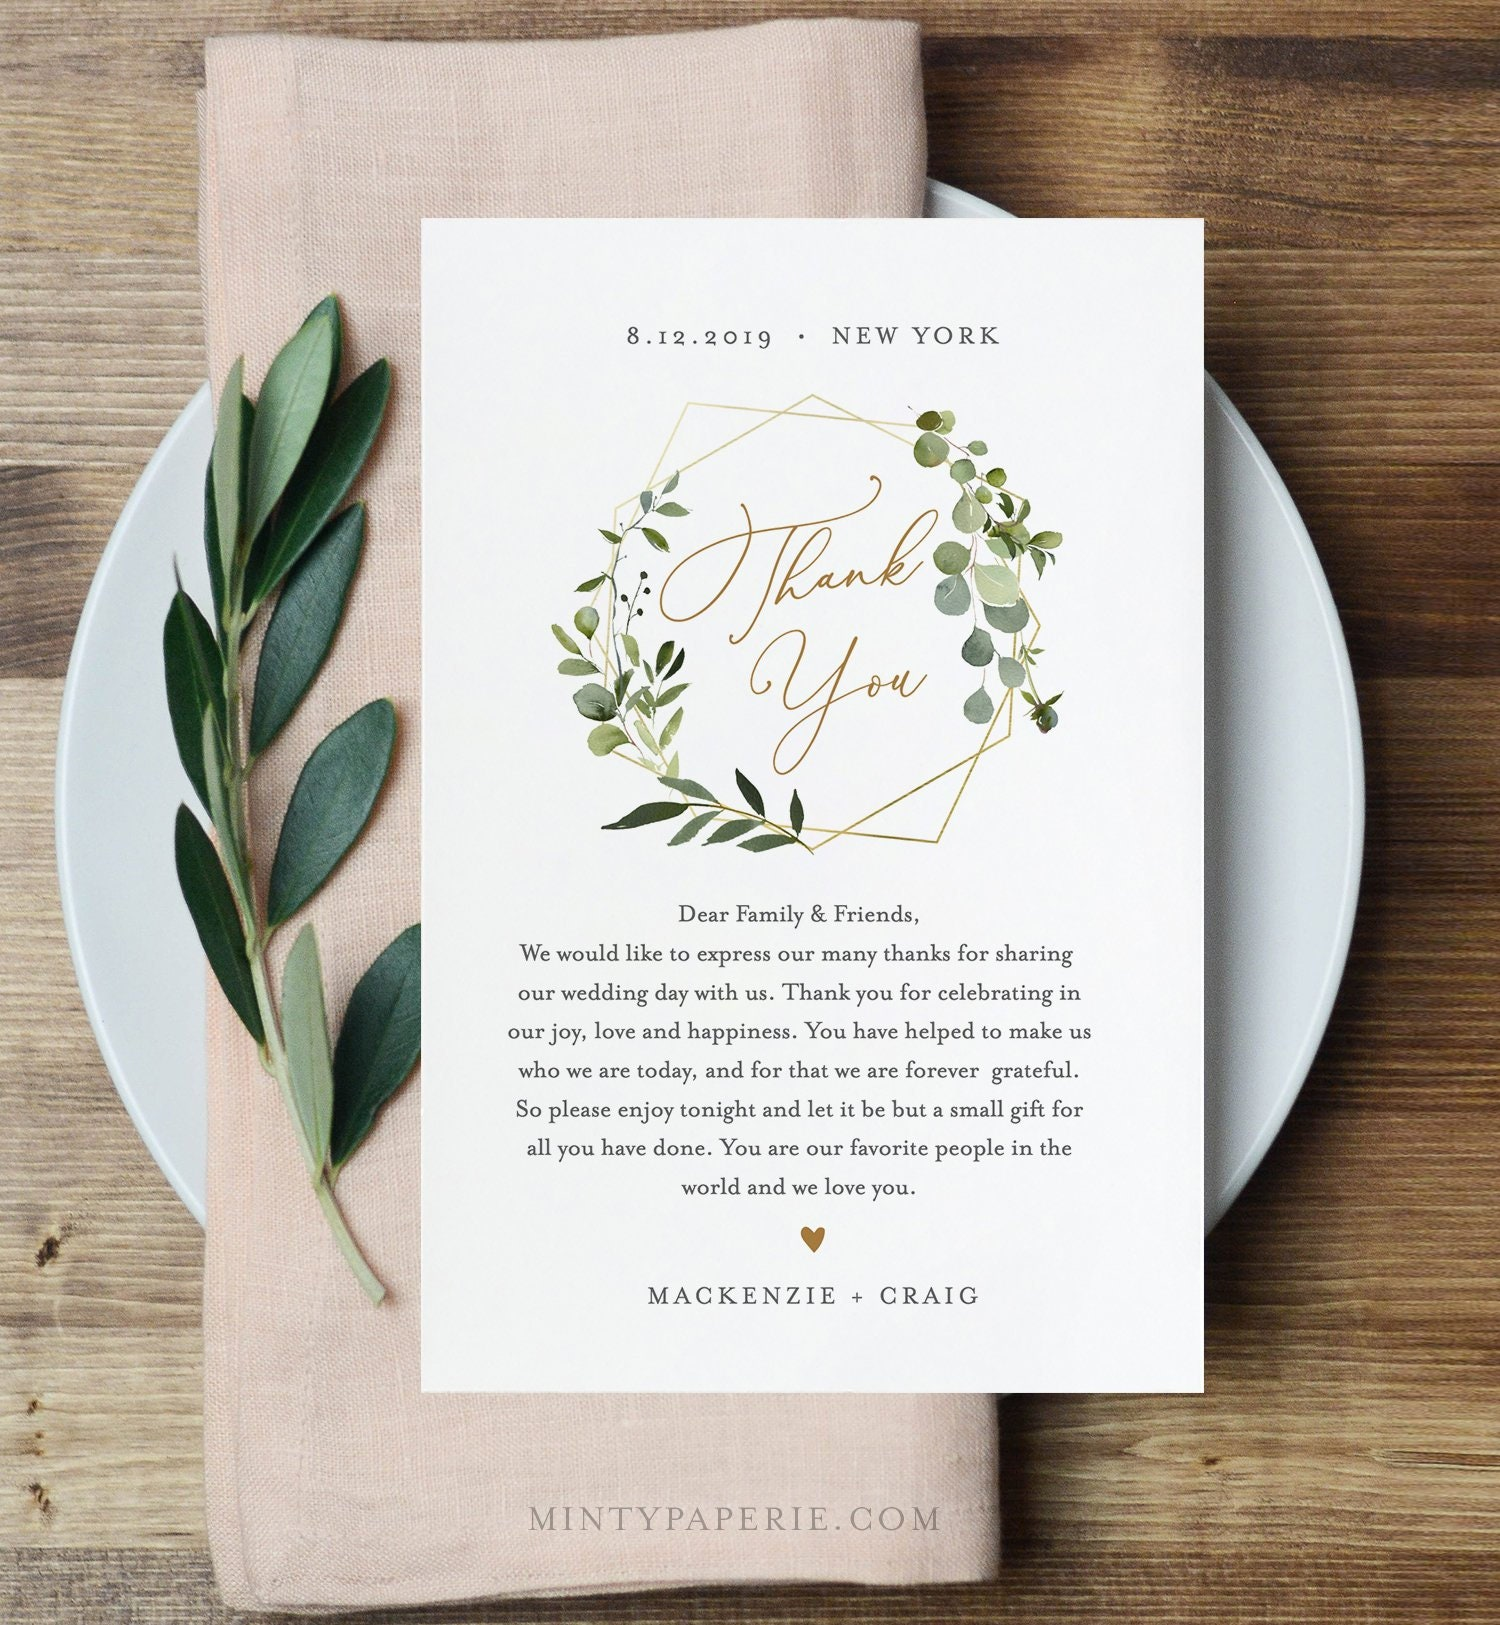 VW29 Printable Wedding Thank You Card Rustic Greenery Wedding Thank You Card Template Golden Greenery 4.25x5.5 inches